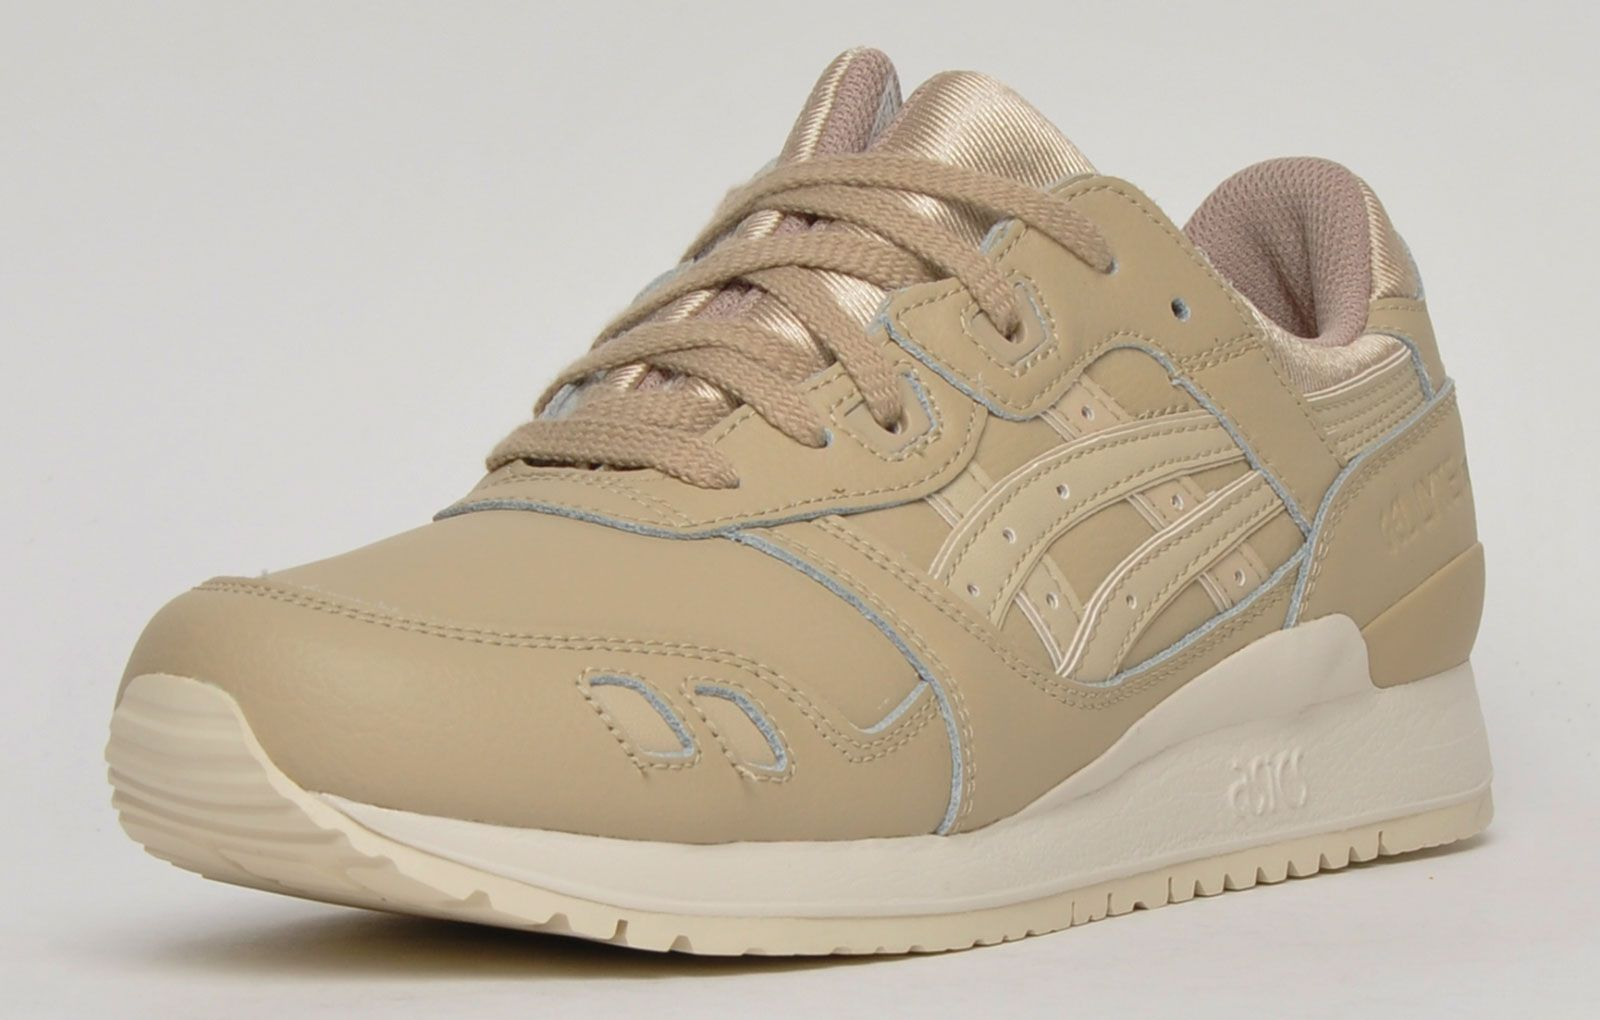 Asics Tiger Gel Lyte III Leather Mens